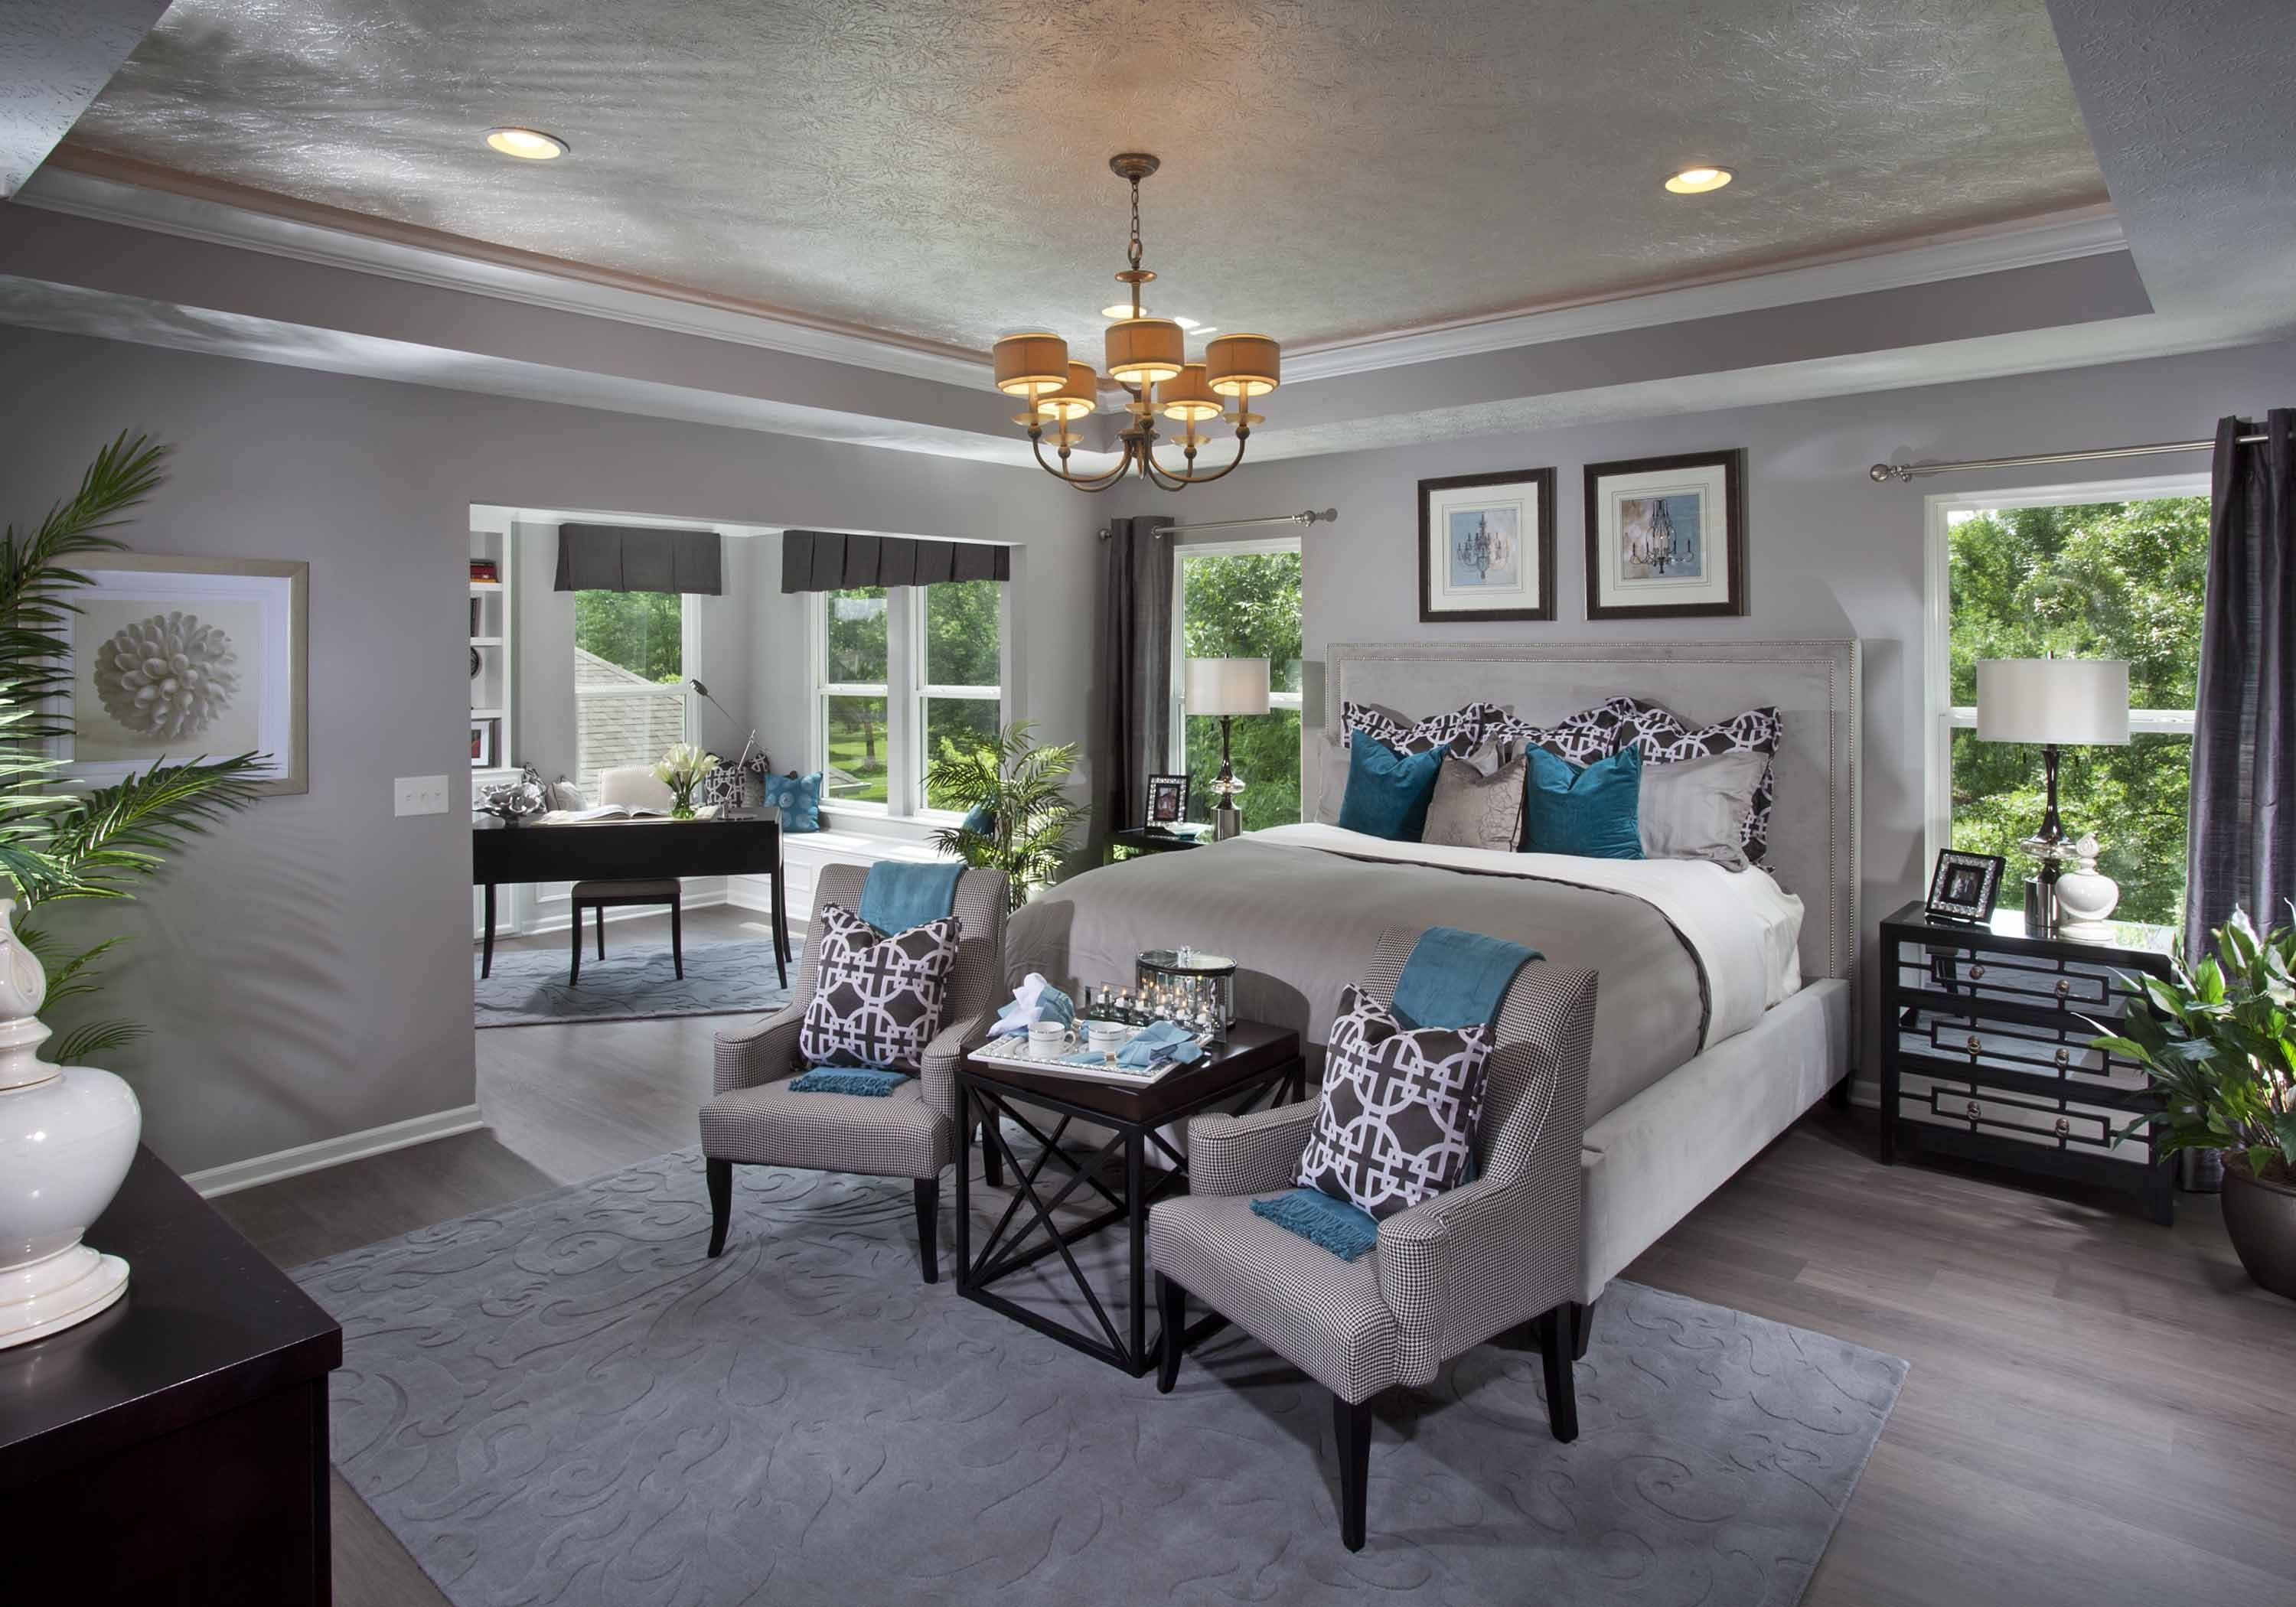 From the dream model home we saw...I like the gray walls with the ...